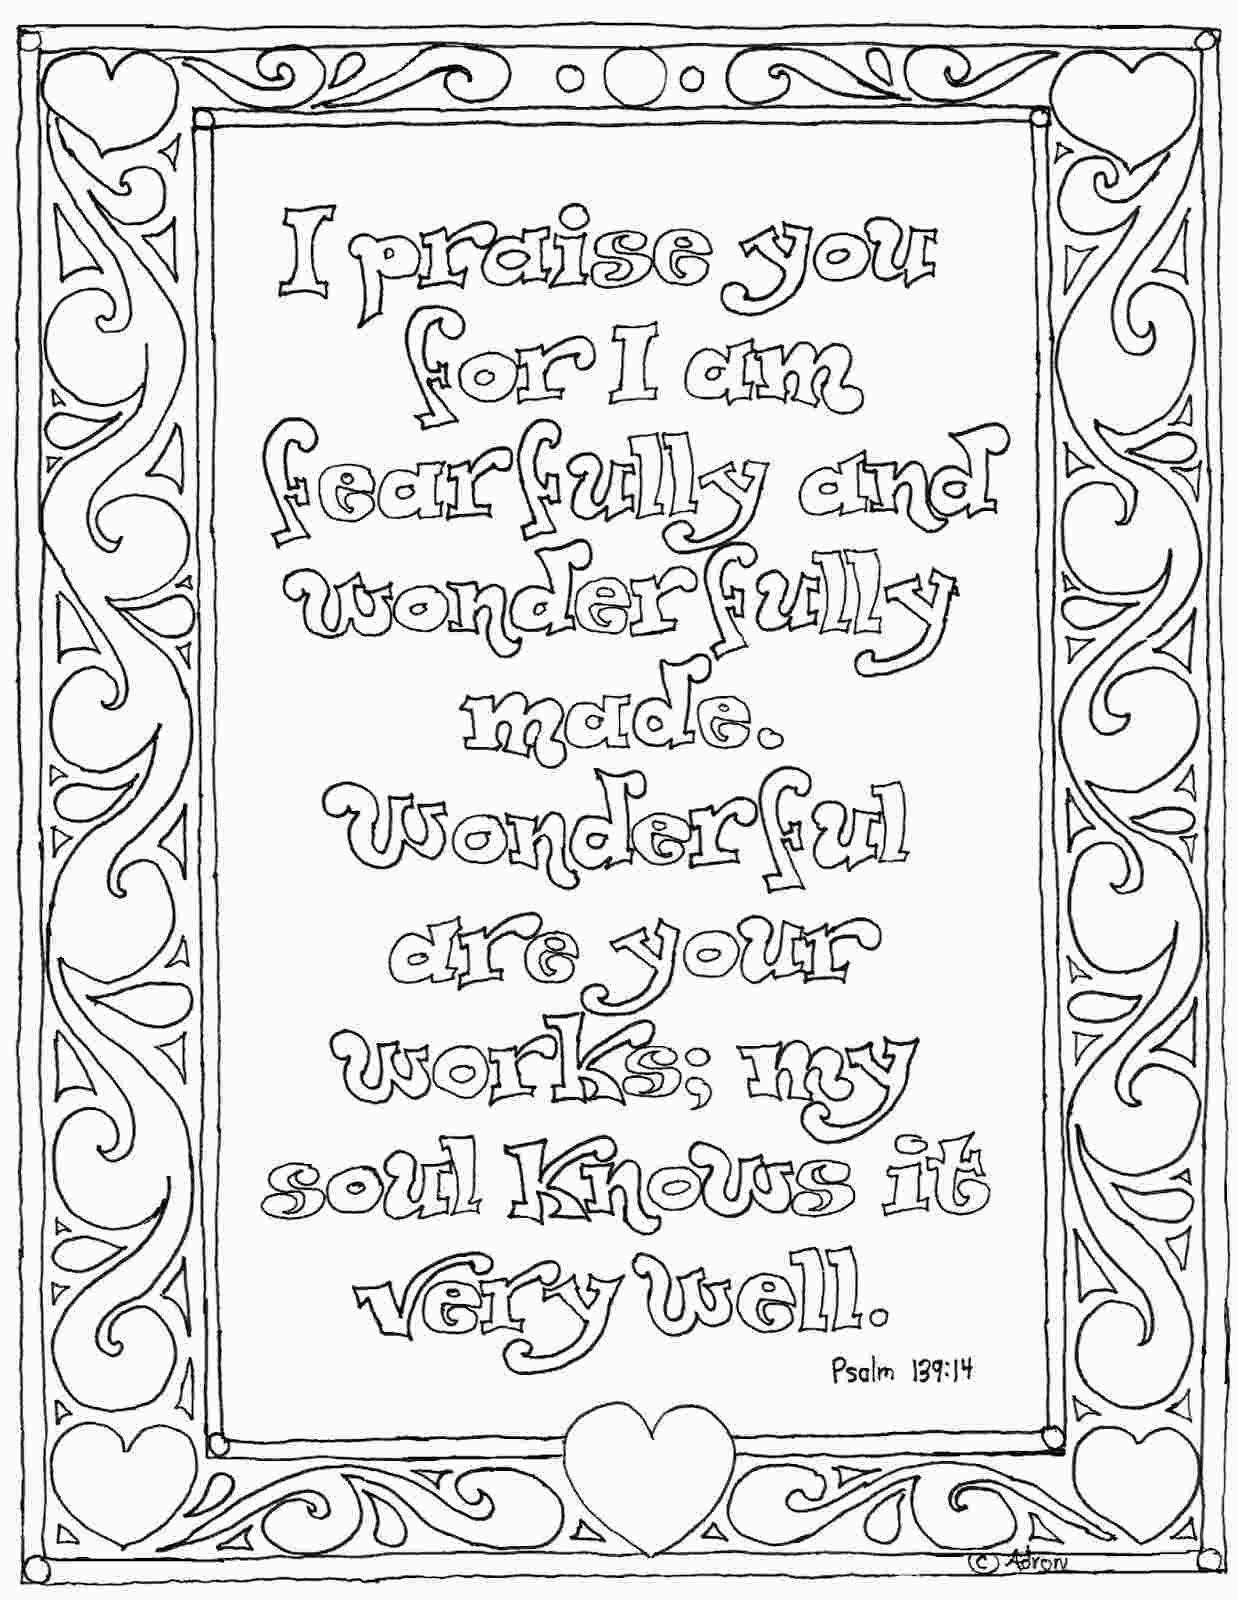 psalm 139 coloring page psalm 139 coloring page awesome pin by marissa zollars on page psalm coloring 139